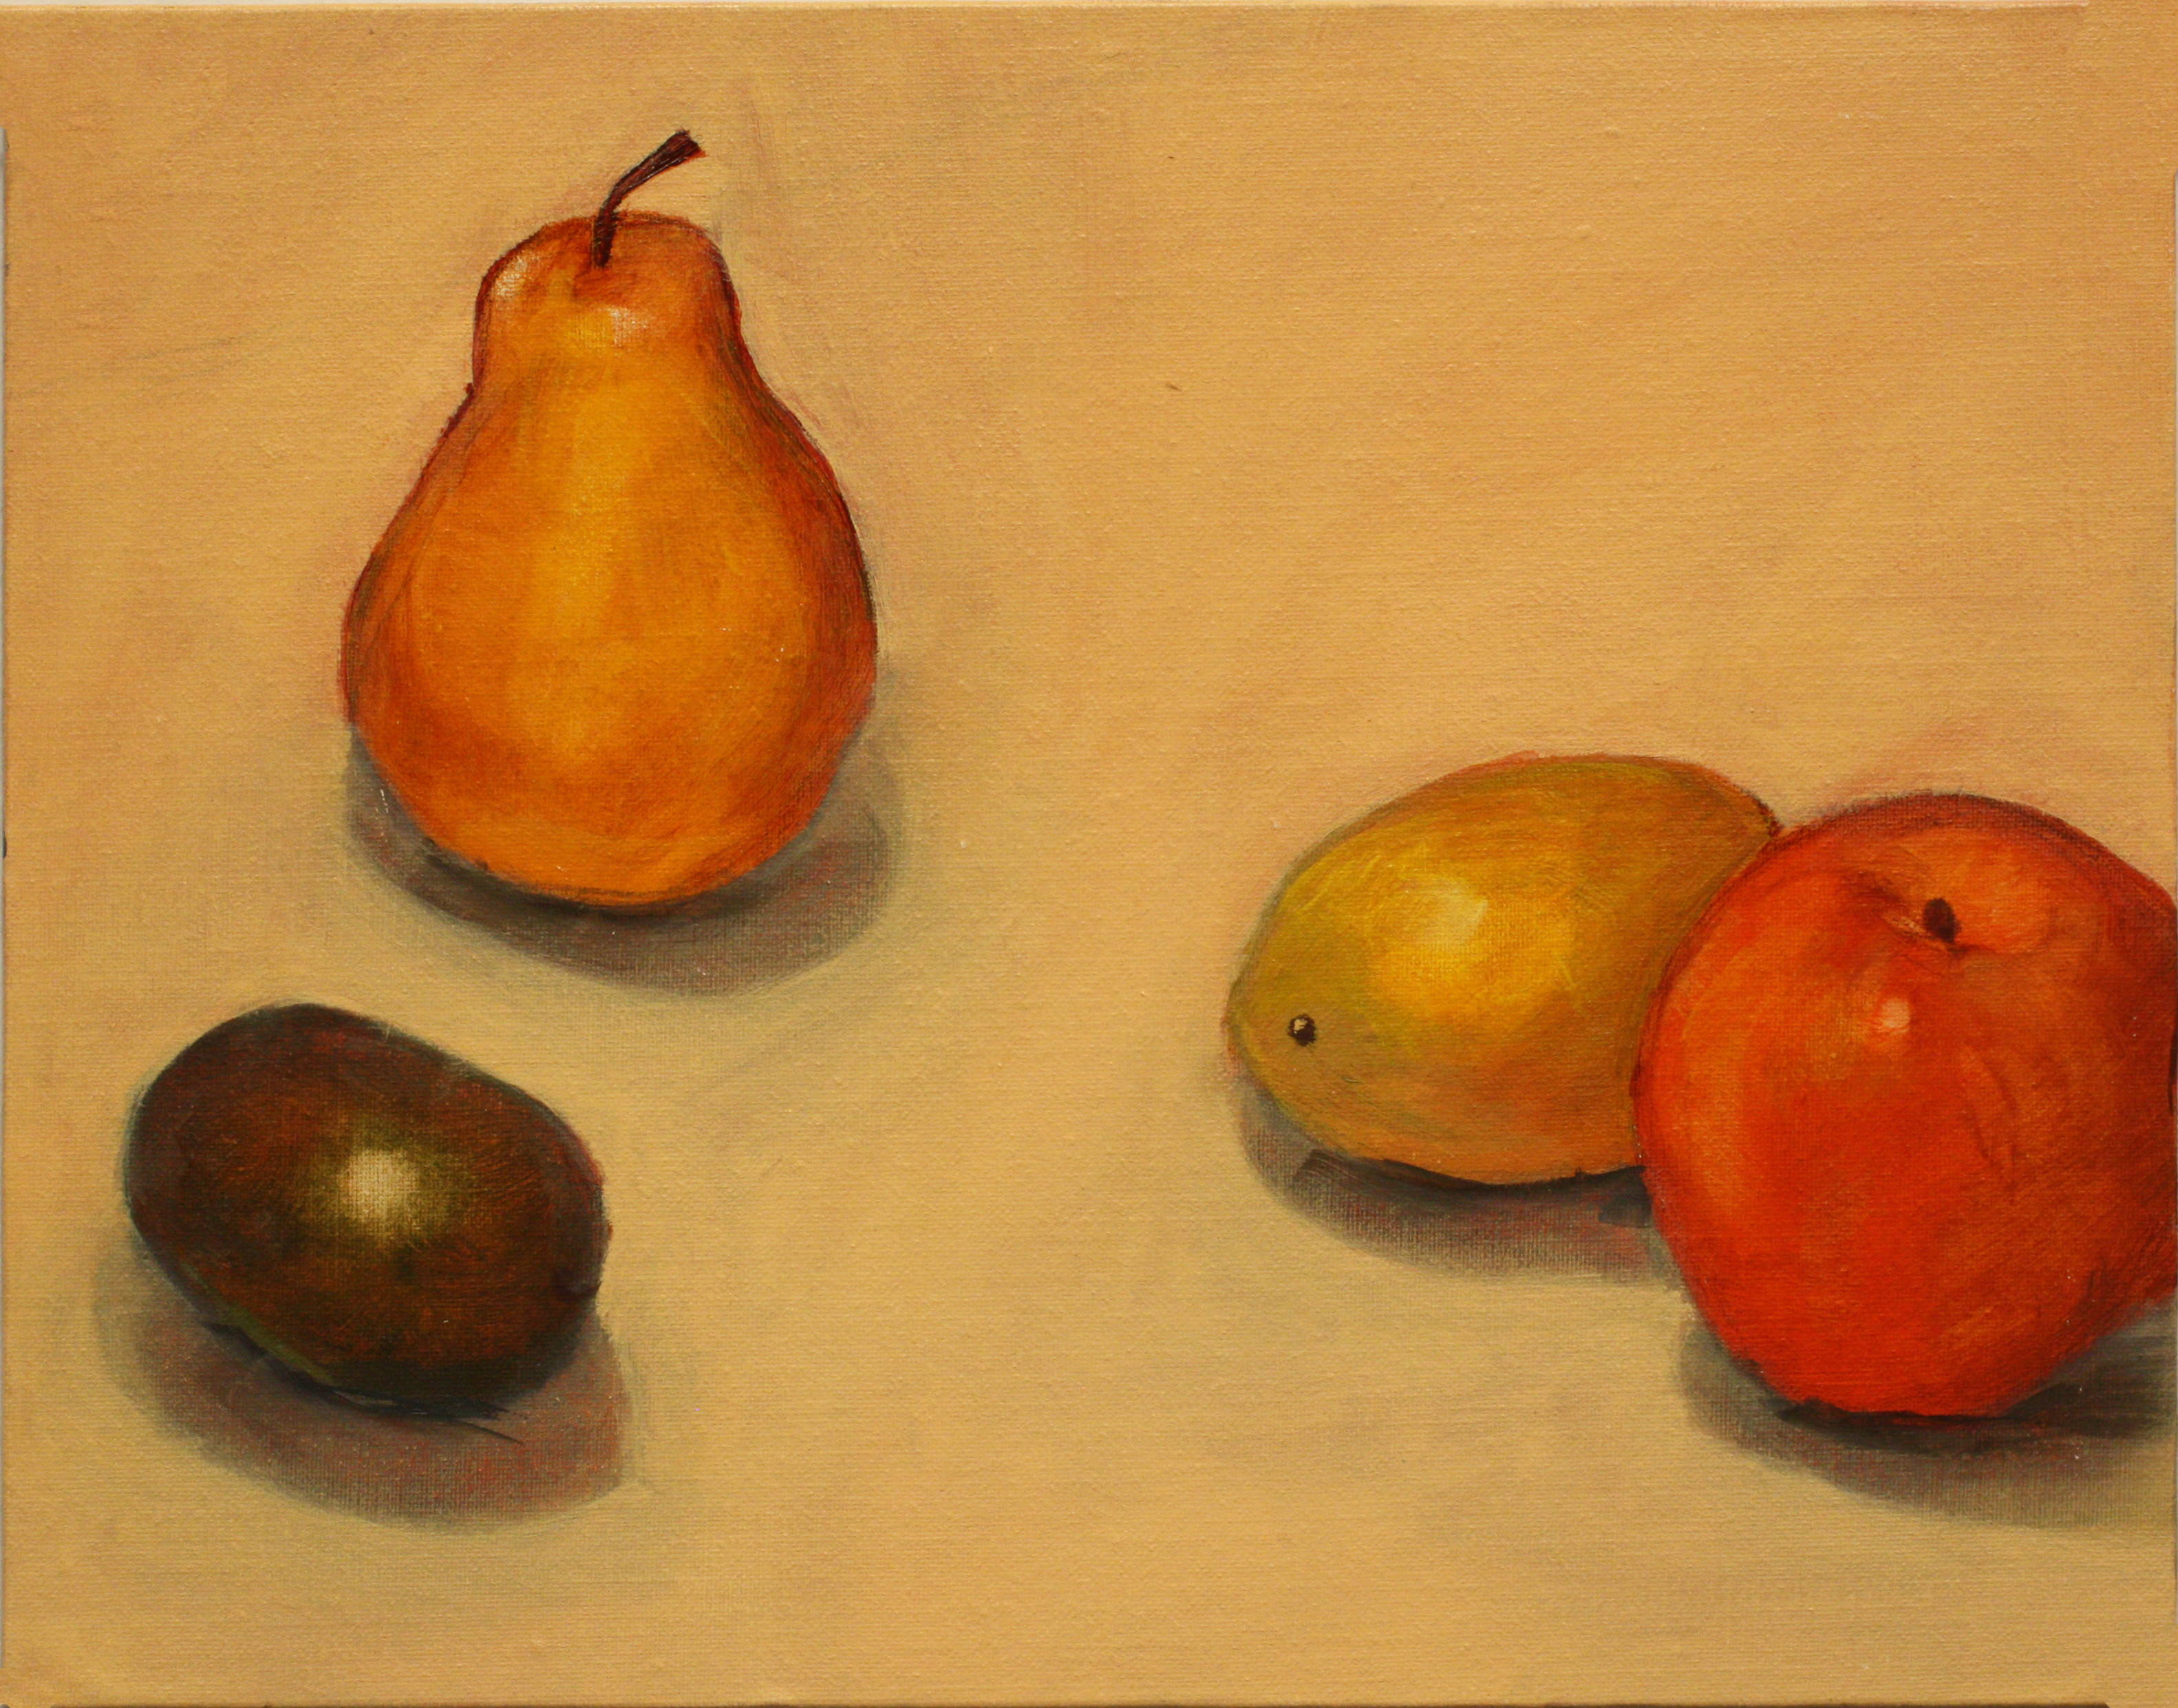 Painting of plum, orange, lemon, and pear.